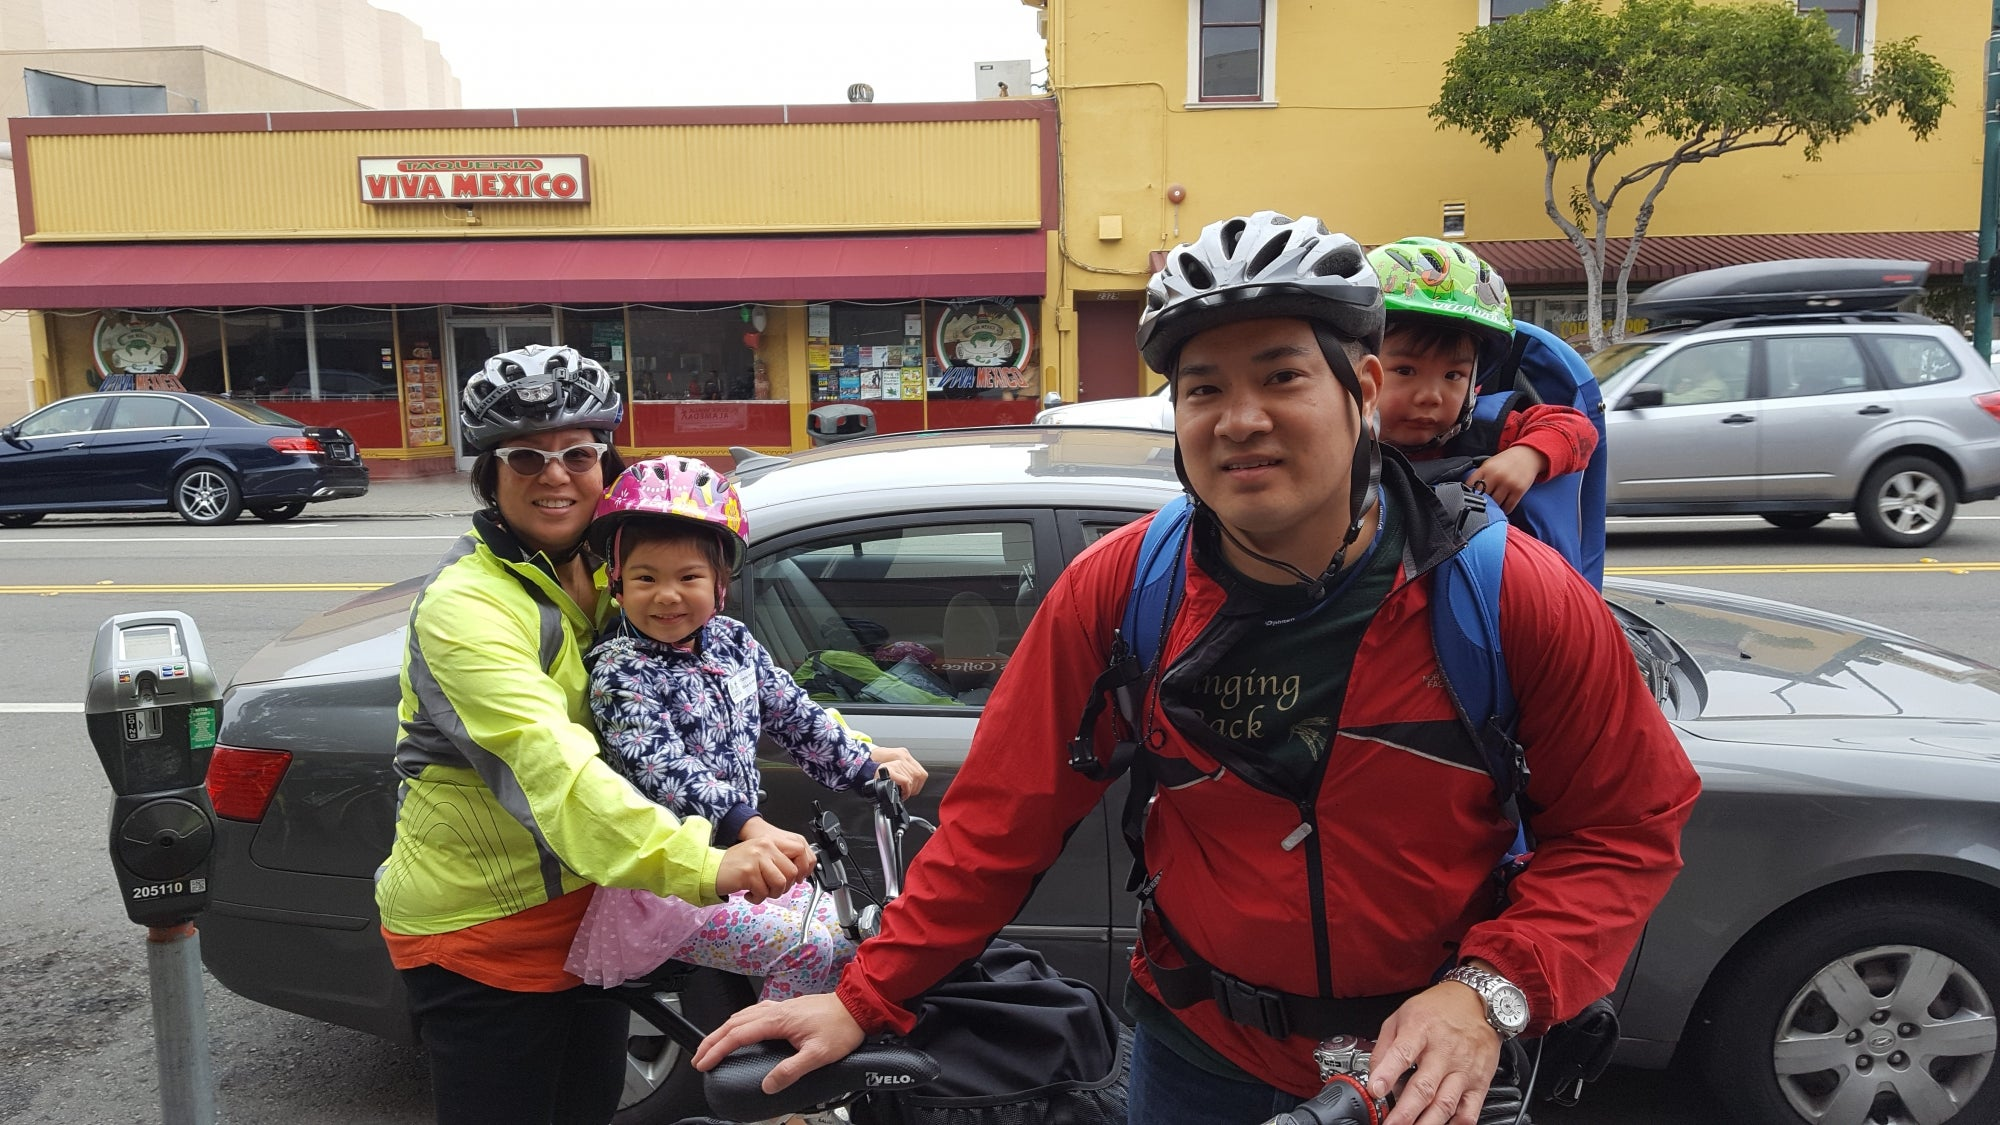 A family of bicyclists--two parents and two children--smile for the camera